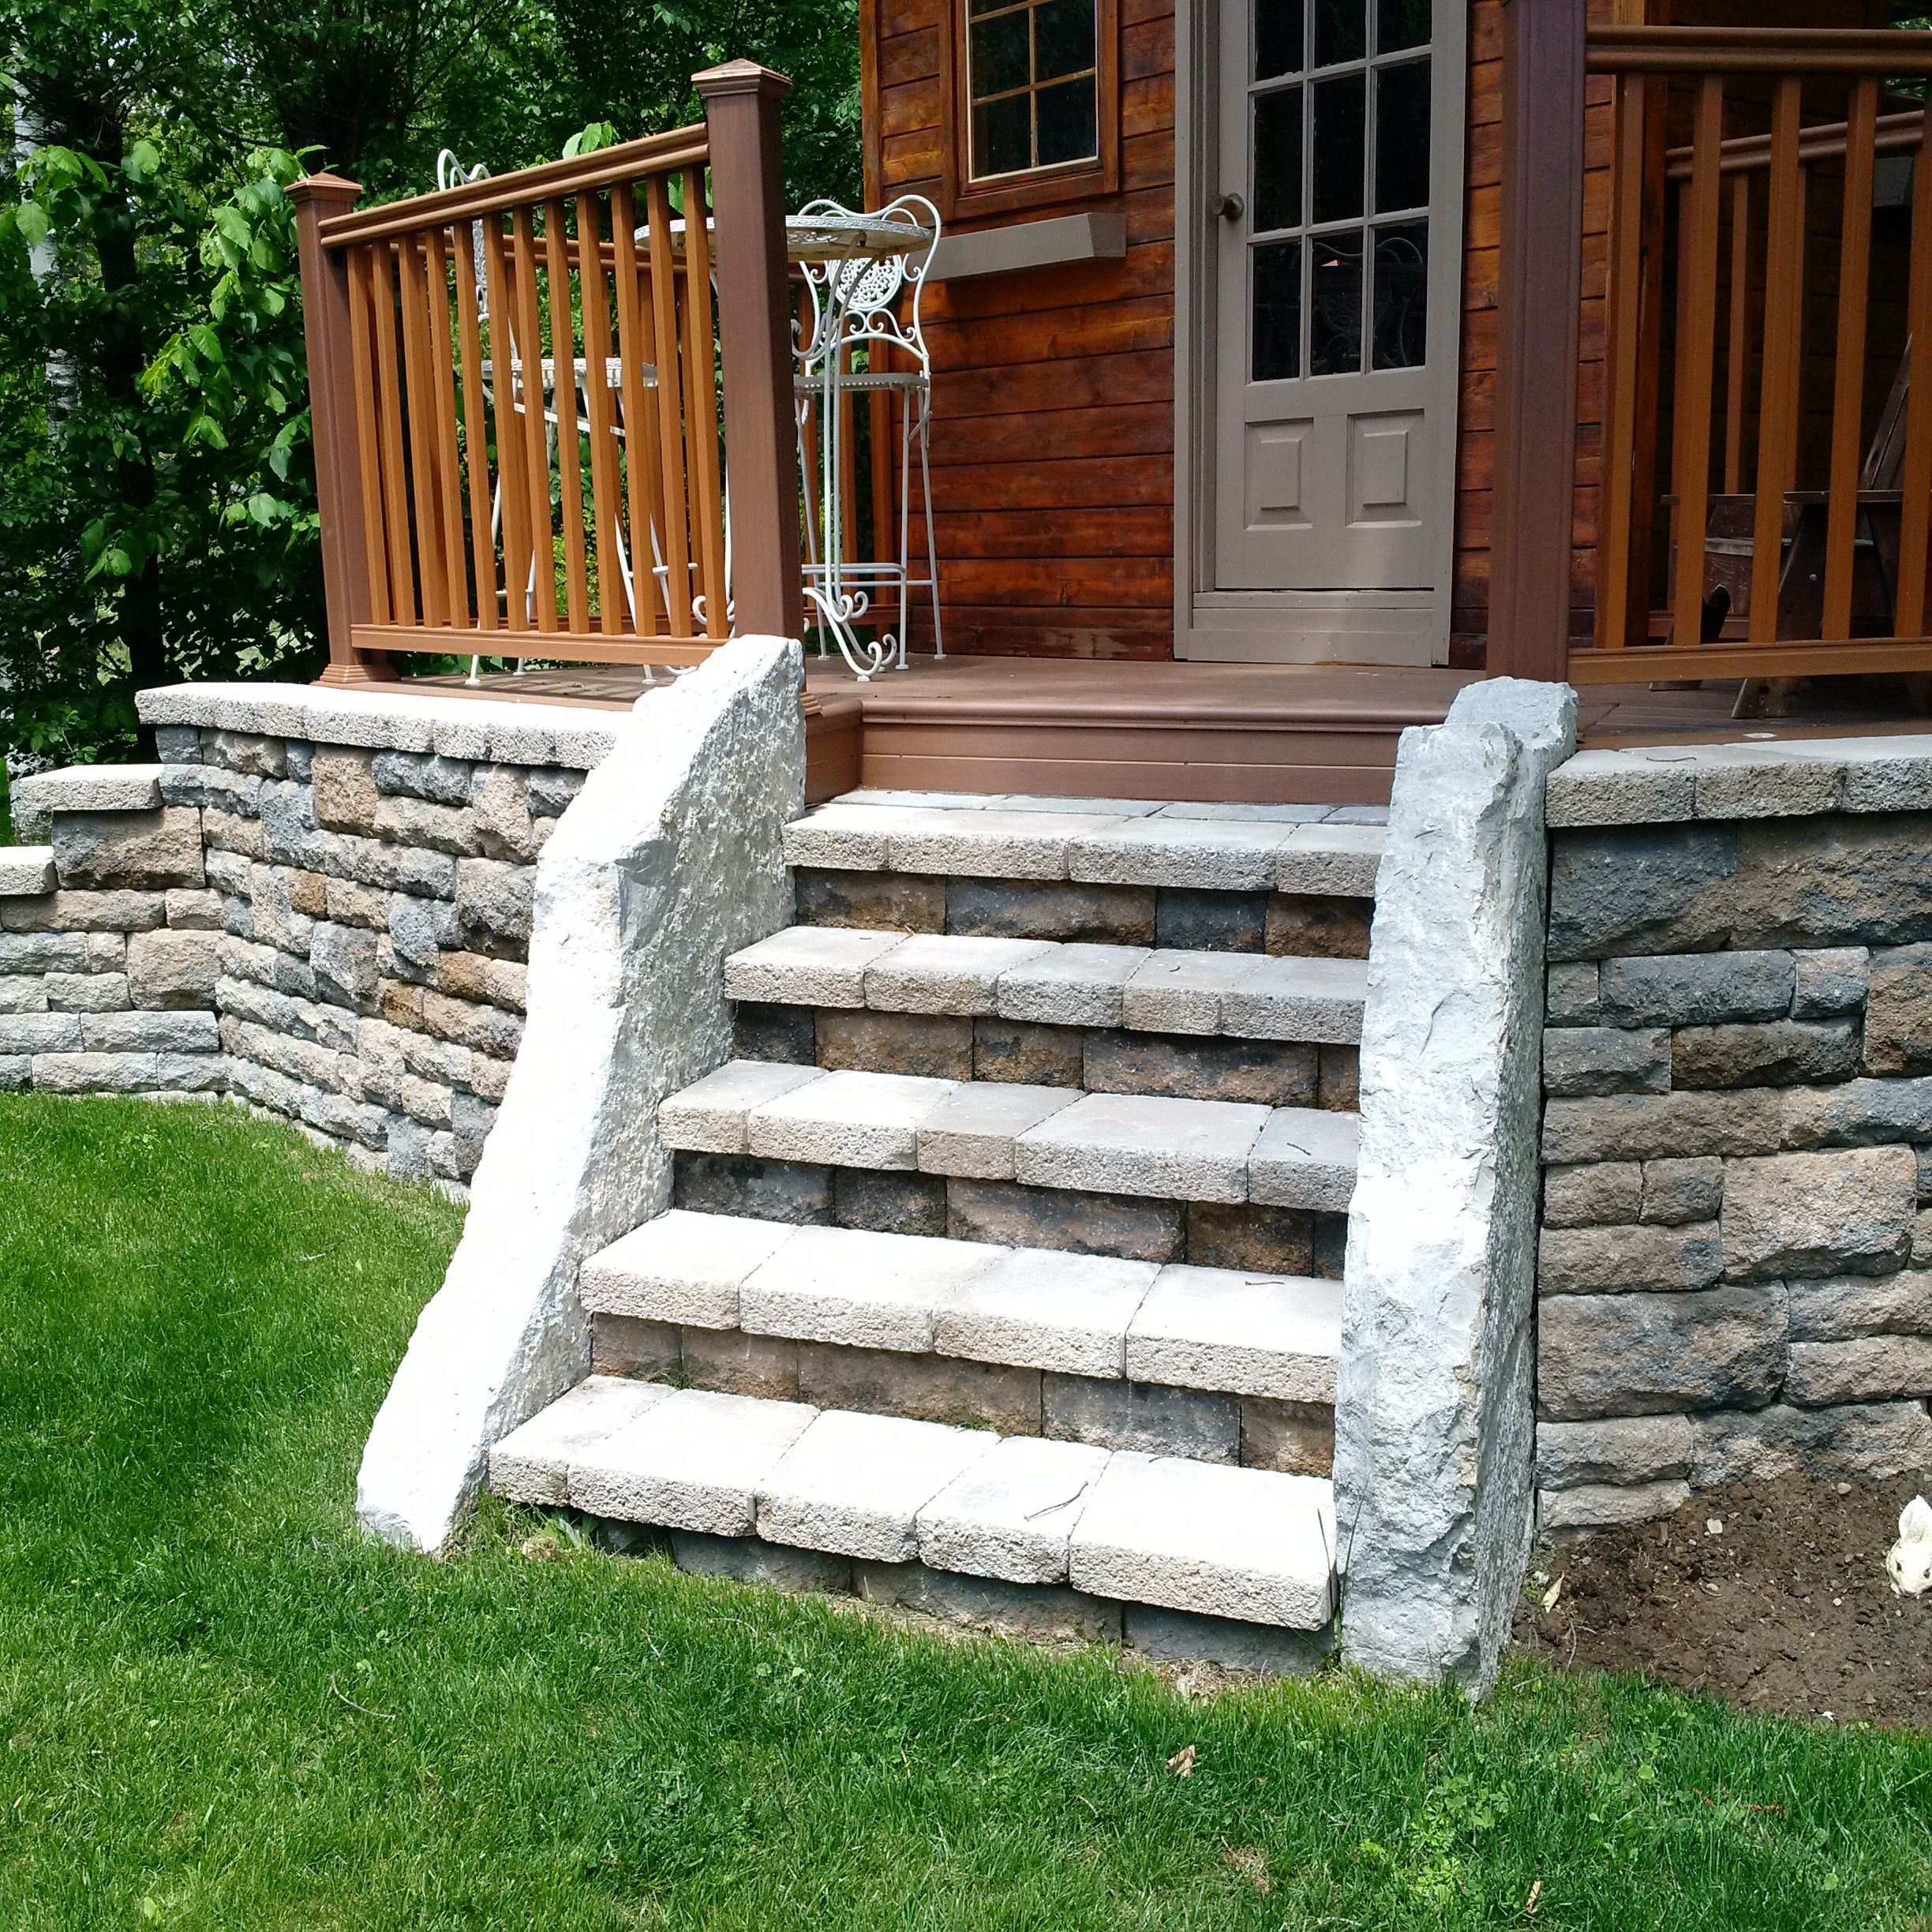 Walls And Steps With Upright Slabs Of Stone Retaining Wall Steps Retaining Wall Interlocking Pavers